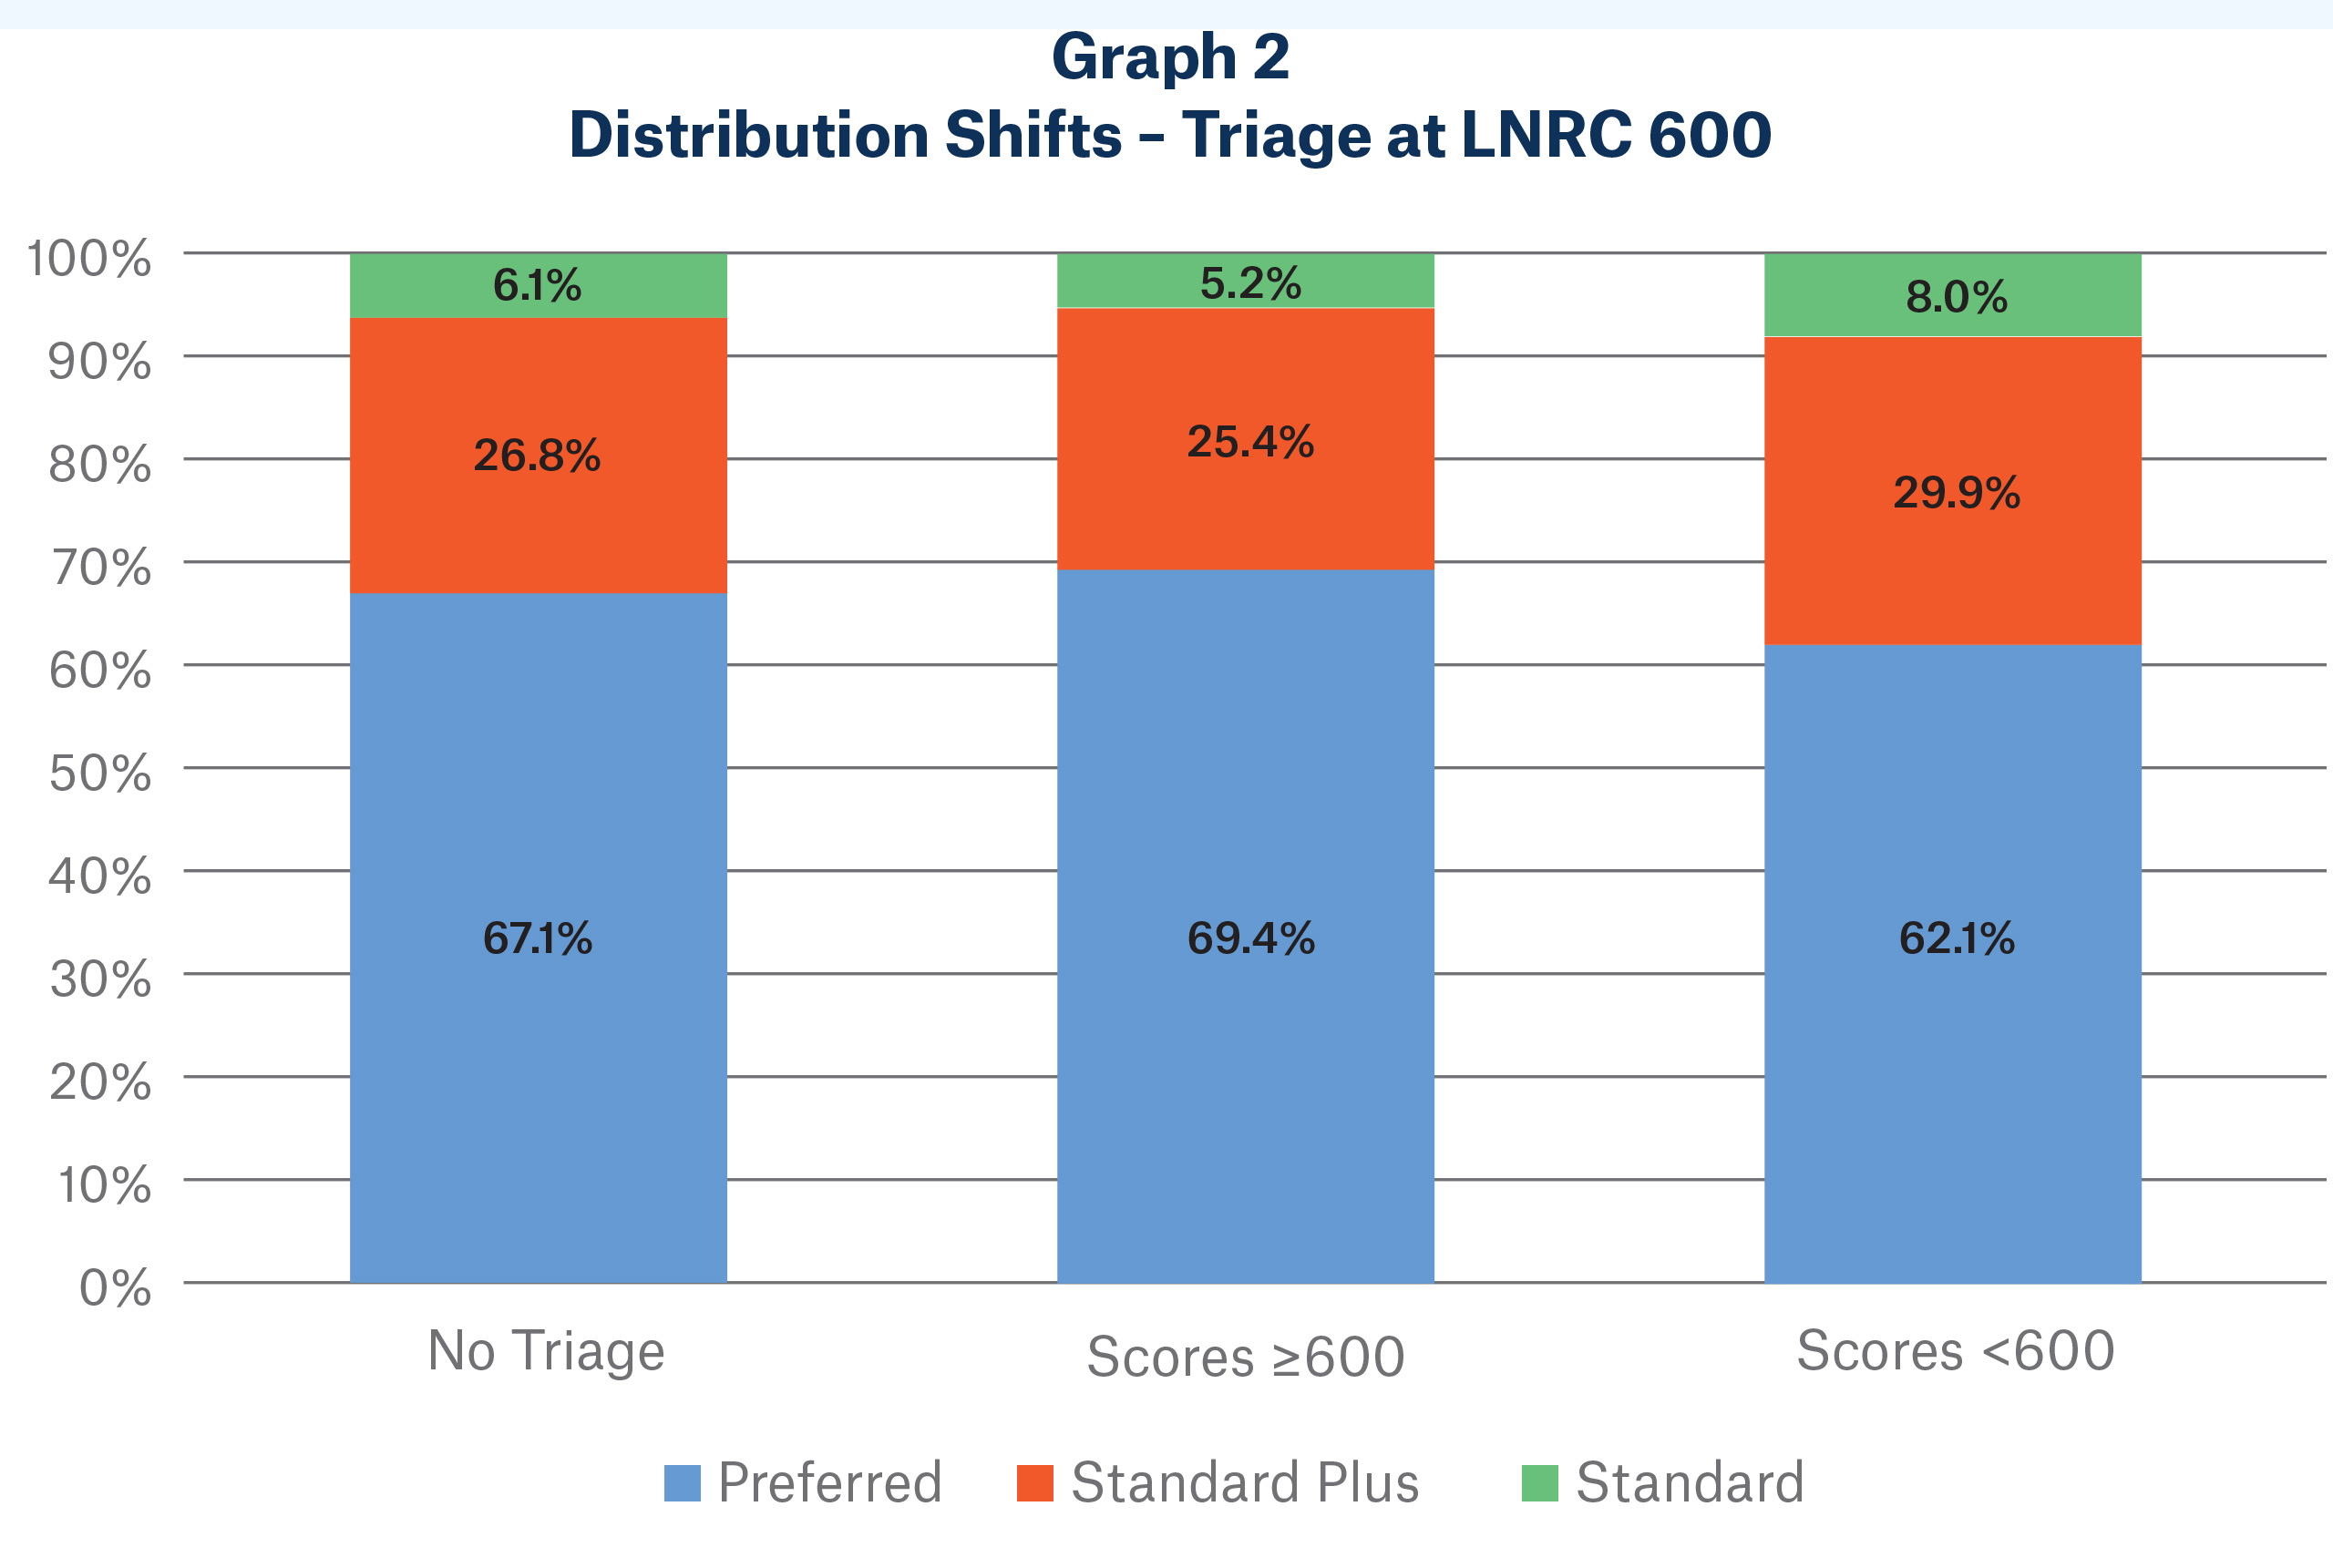 Graph 2 image - Distribution Shifts - Triage at LNRC 600